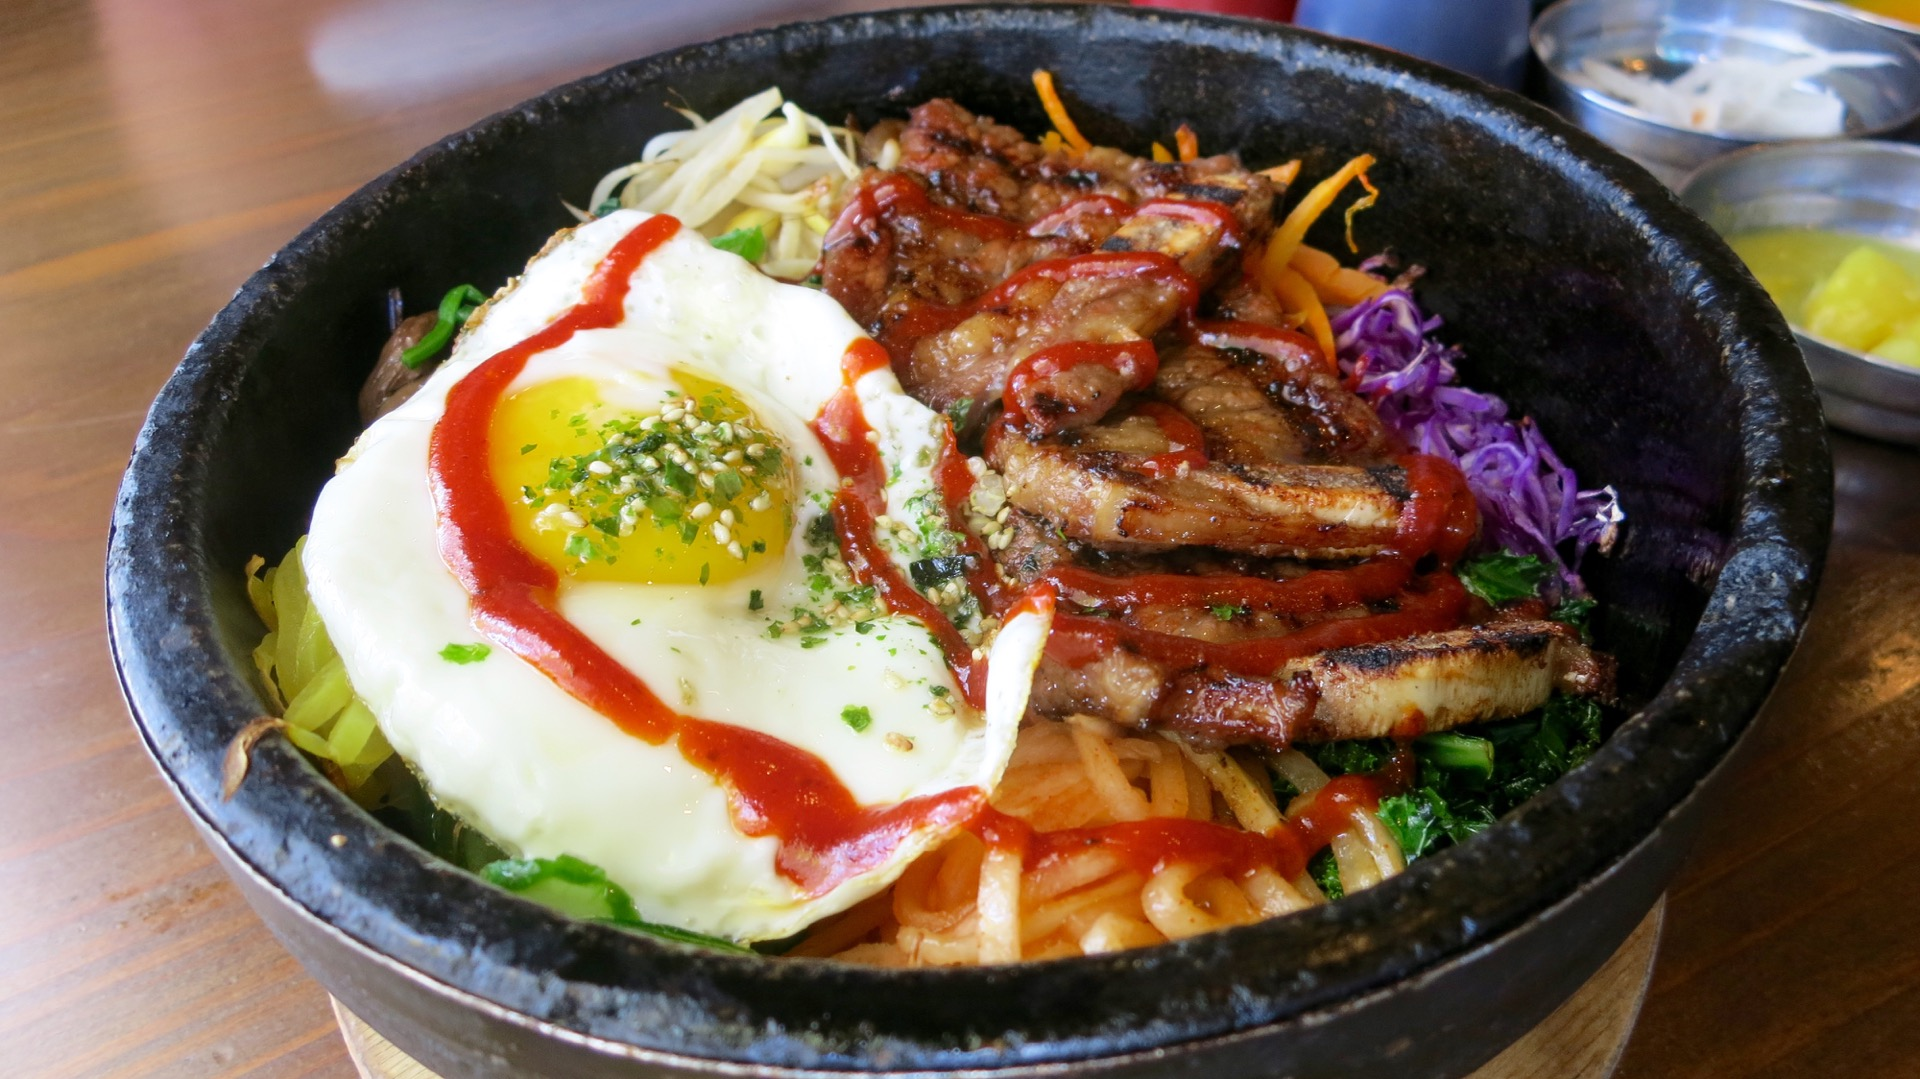 A symphony of sounds and flavors come with the sizzling dol sot bi bim bap at Bowl'd.